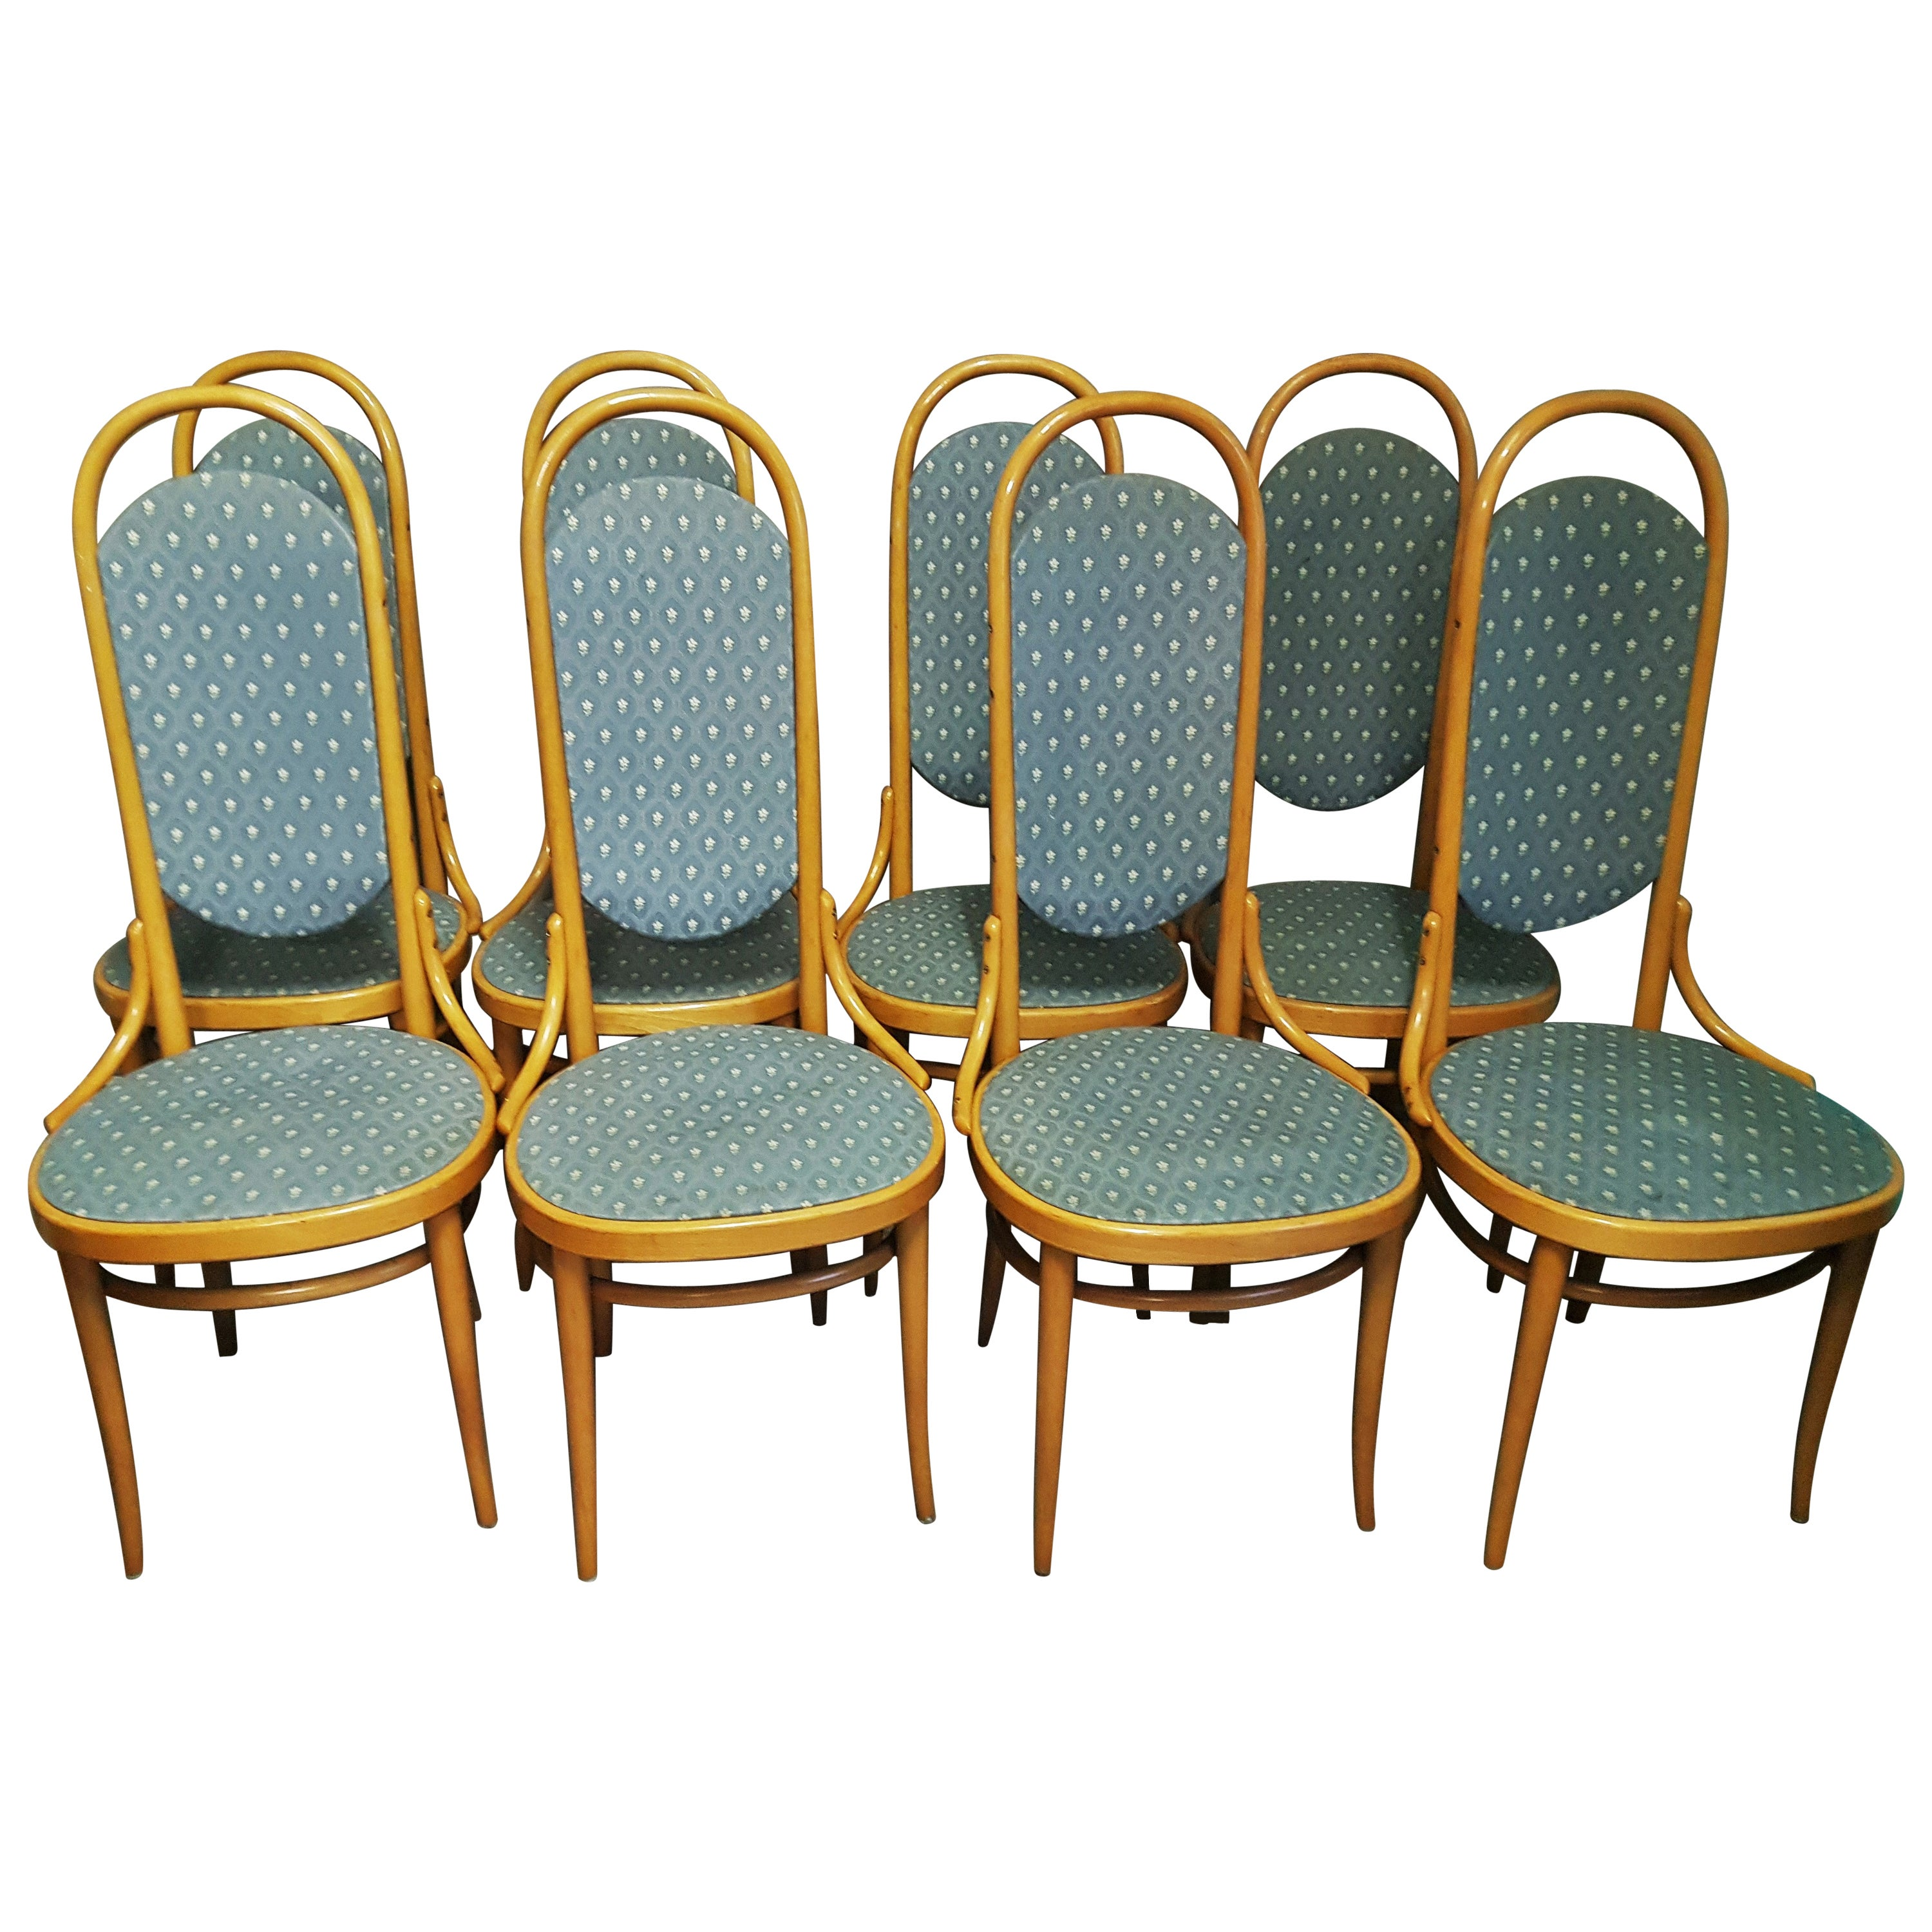 Midcentury Set of 8 Thonet High Back Bentwood Dining Chairs